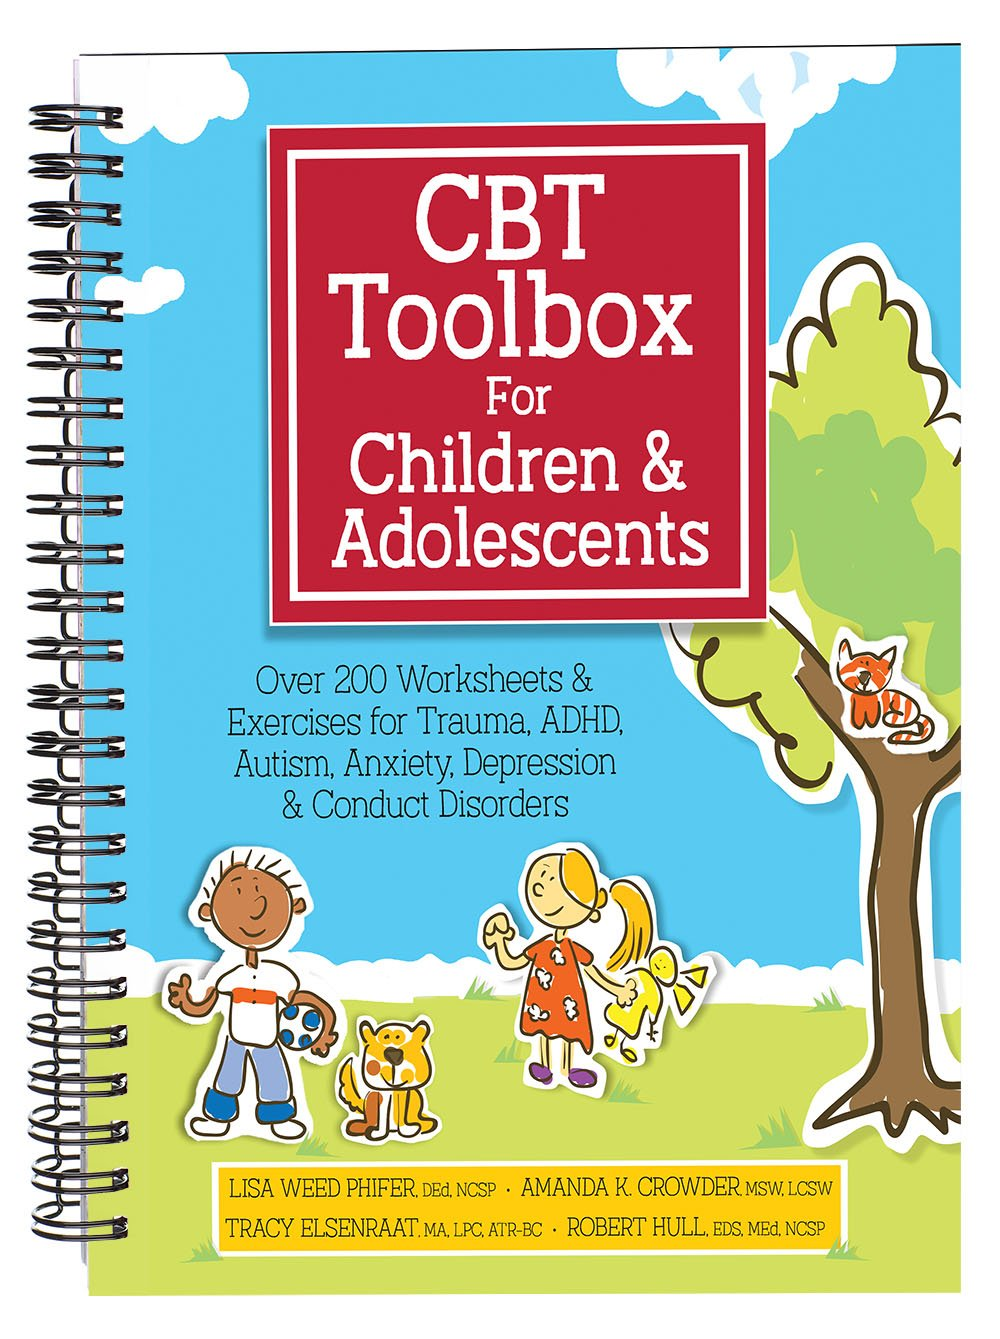 CBT Toolbox for Children and Adolescents: Over 200 Worksheets & Exercises for Trauma, ADHD, Autism, Anxiety, Depression & Conduct Disorders by PESI Publishing & Media